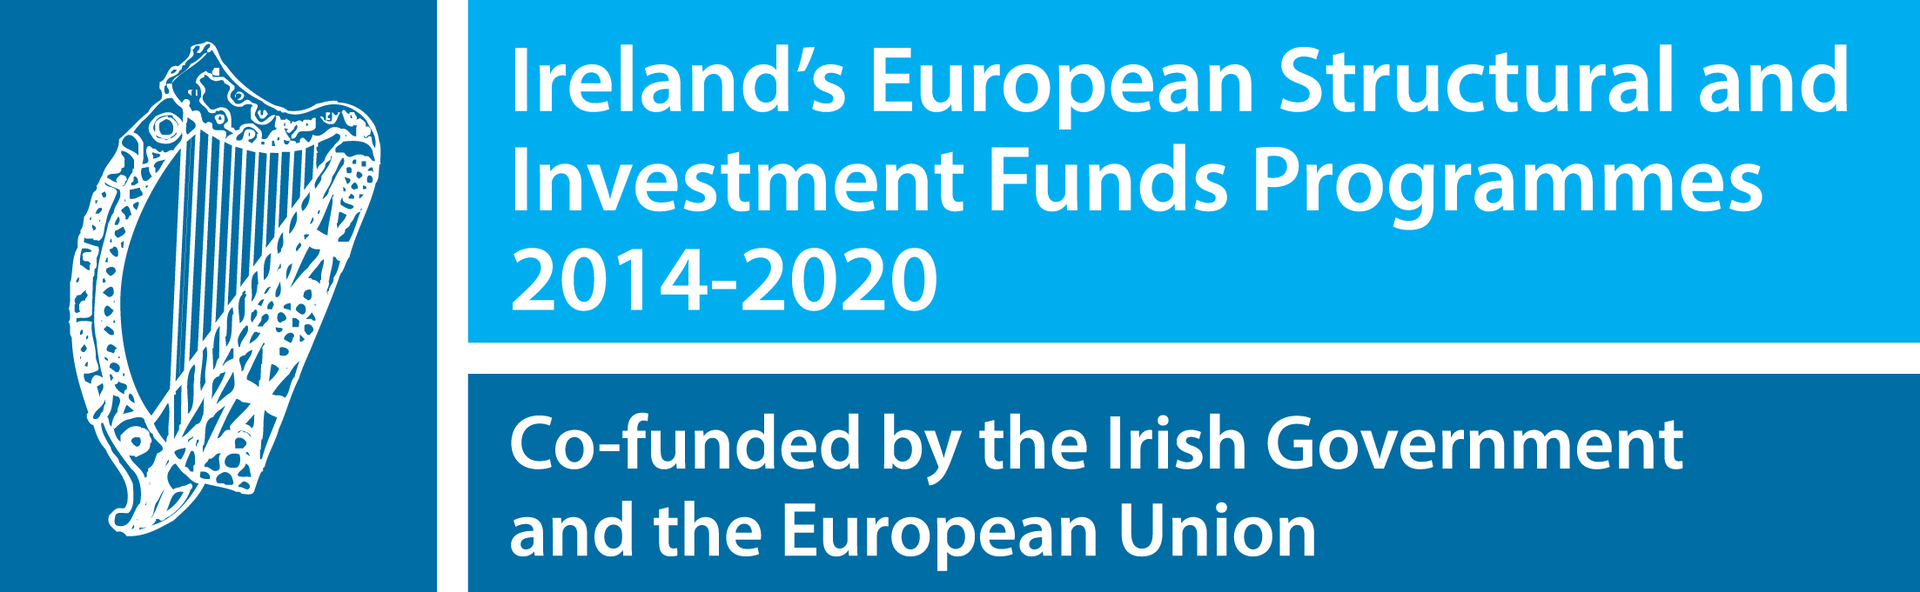 Ireland European Structural and investment funds programme logo